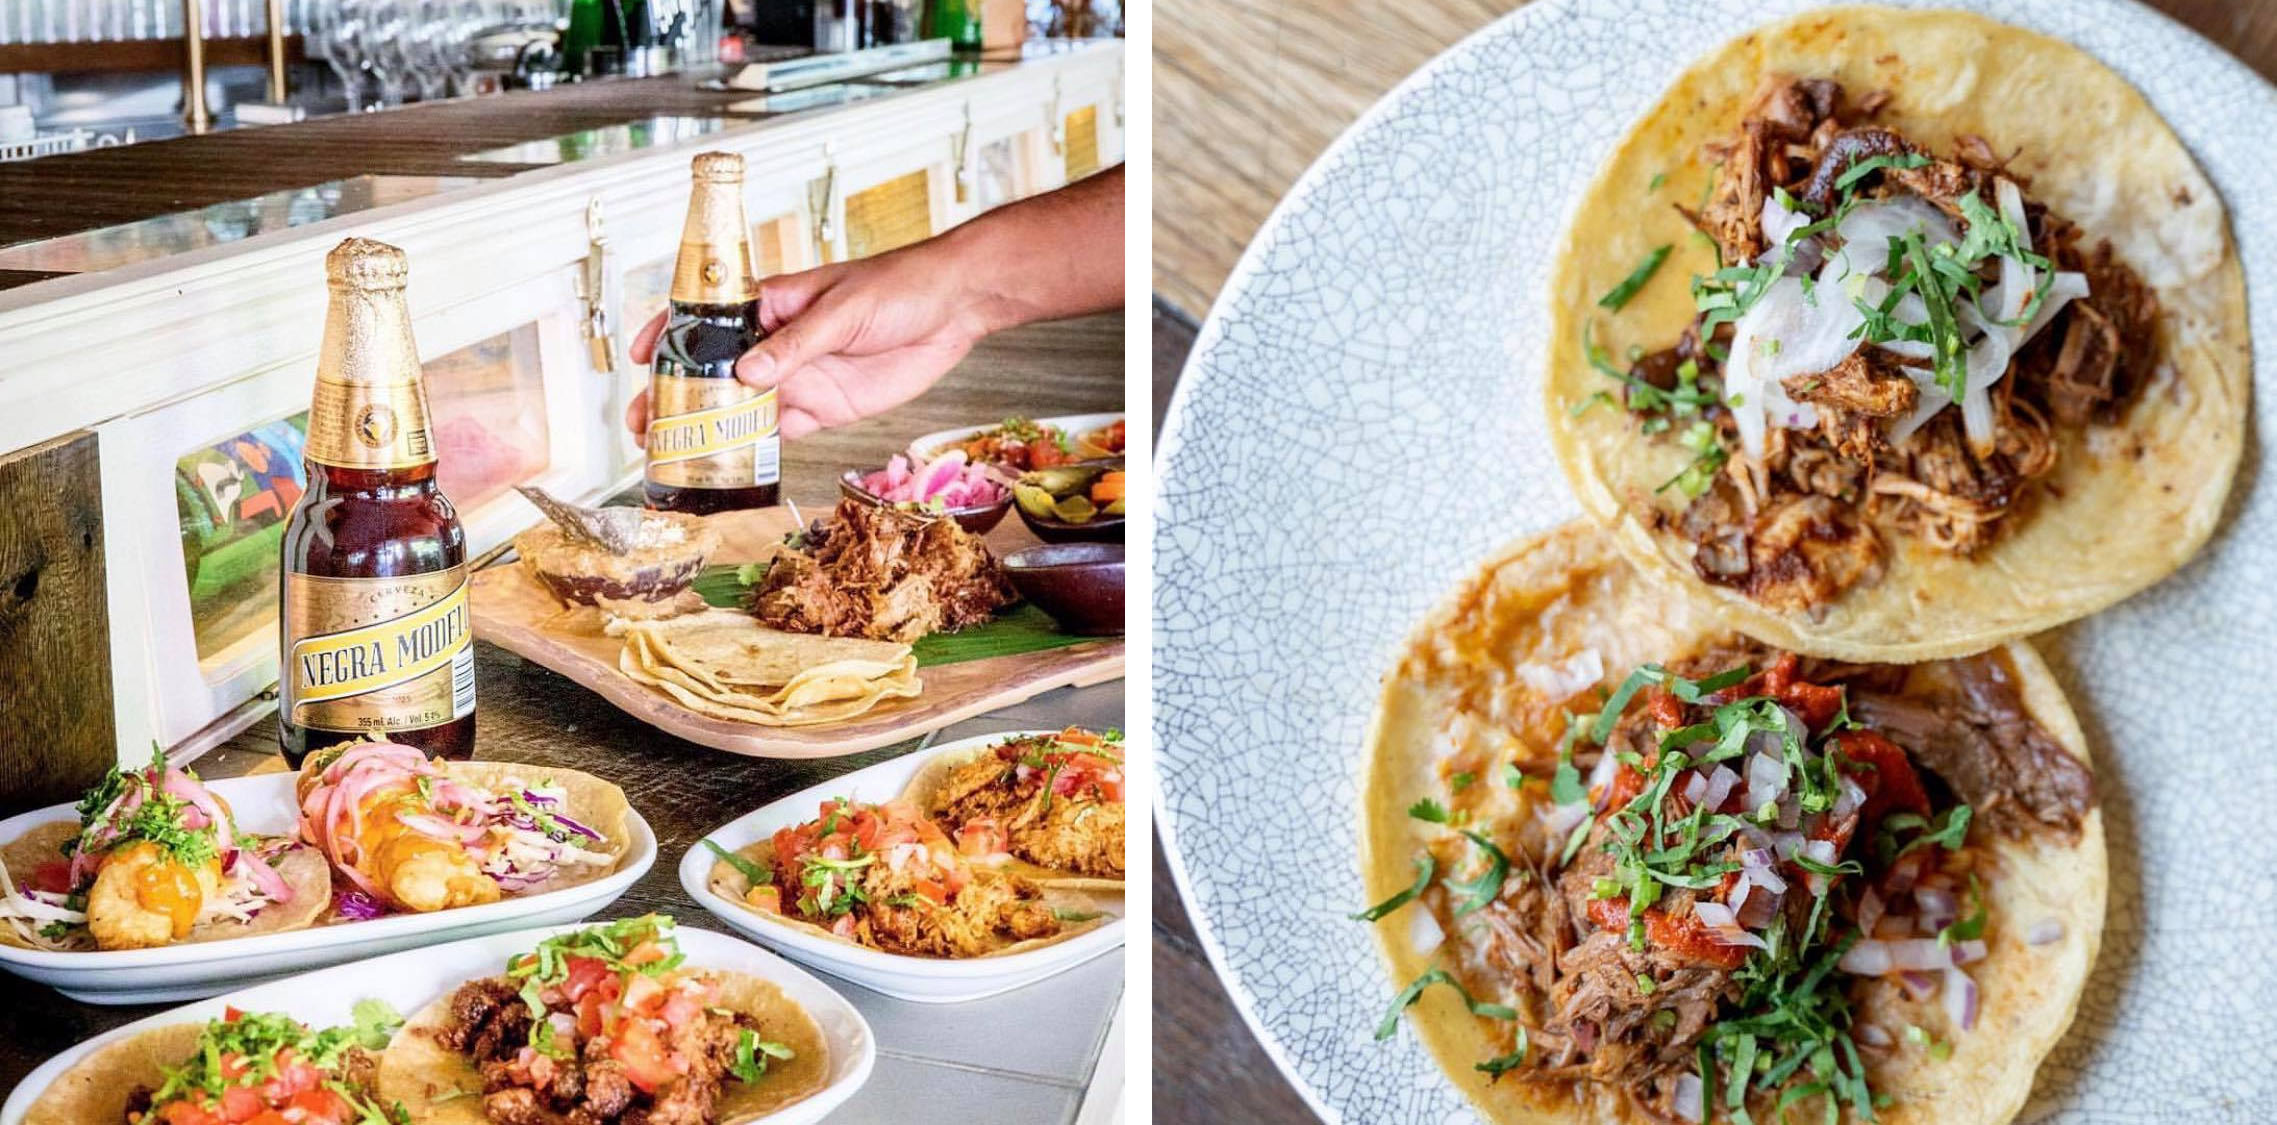 Anyone who has ever travelled to Mexico will know that Australia gets Mexican food wrong. So very, very wrong. Until now. So do yourself a f(l)avour and make like Speedy Gonzales to new Potts Point restaurant, Chula. The restaurant's food offering was created by expat chef Alvaro Valenzuela, who moved to Sydney from Mexico City to showcase the fresher, more vibrant side of his native cuisine.    Location:  Shop 7, 33 Bayswater Rd, Potts Point